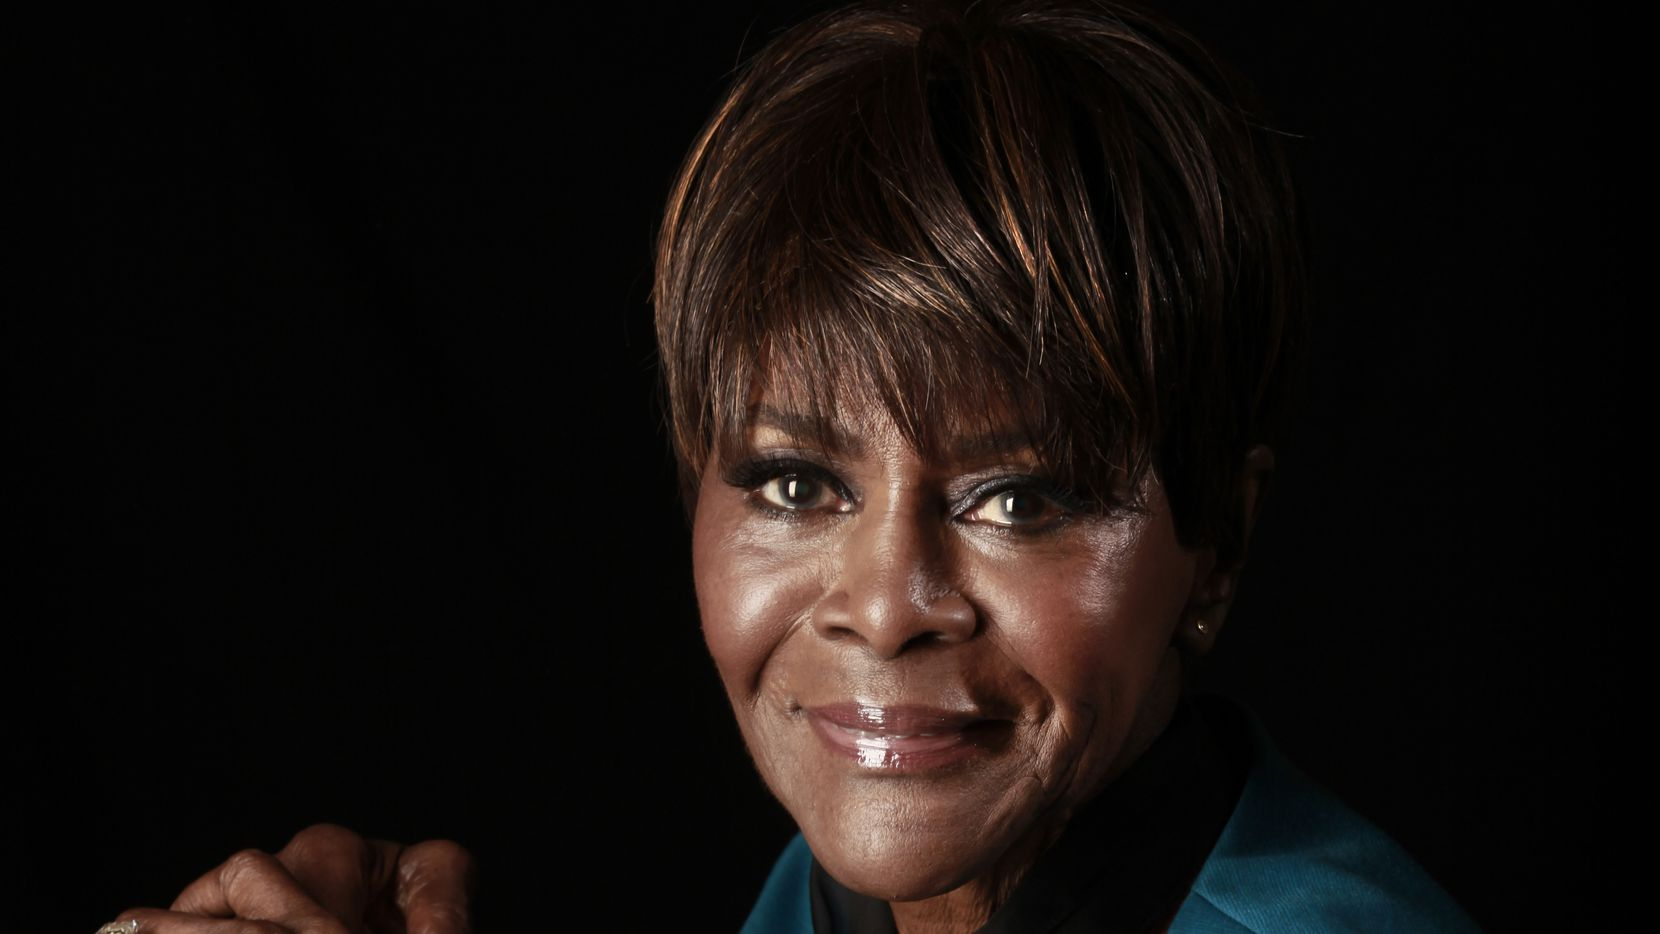 The legendary actress Cicely Tyson died last month at age 96.